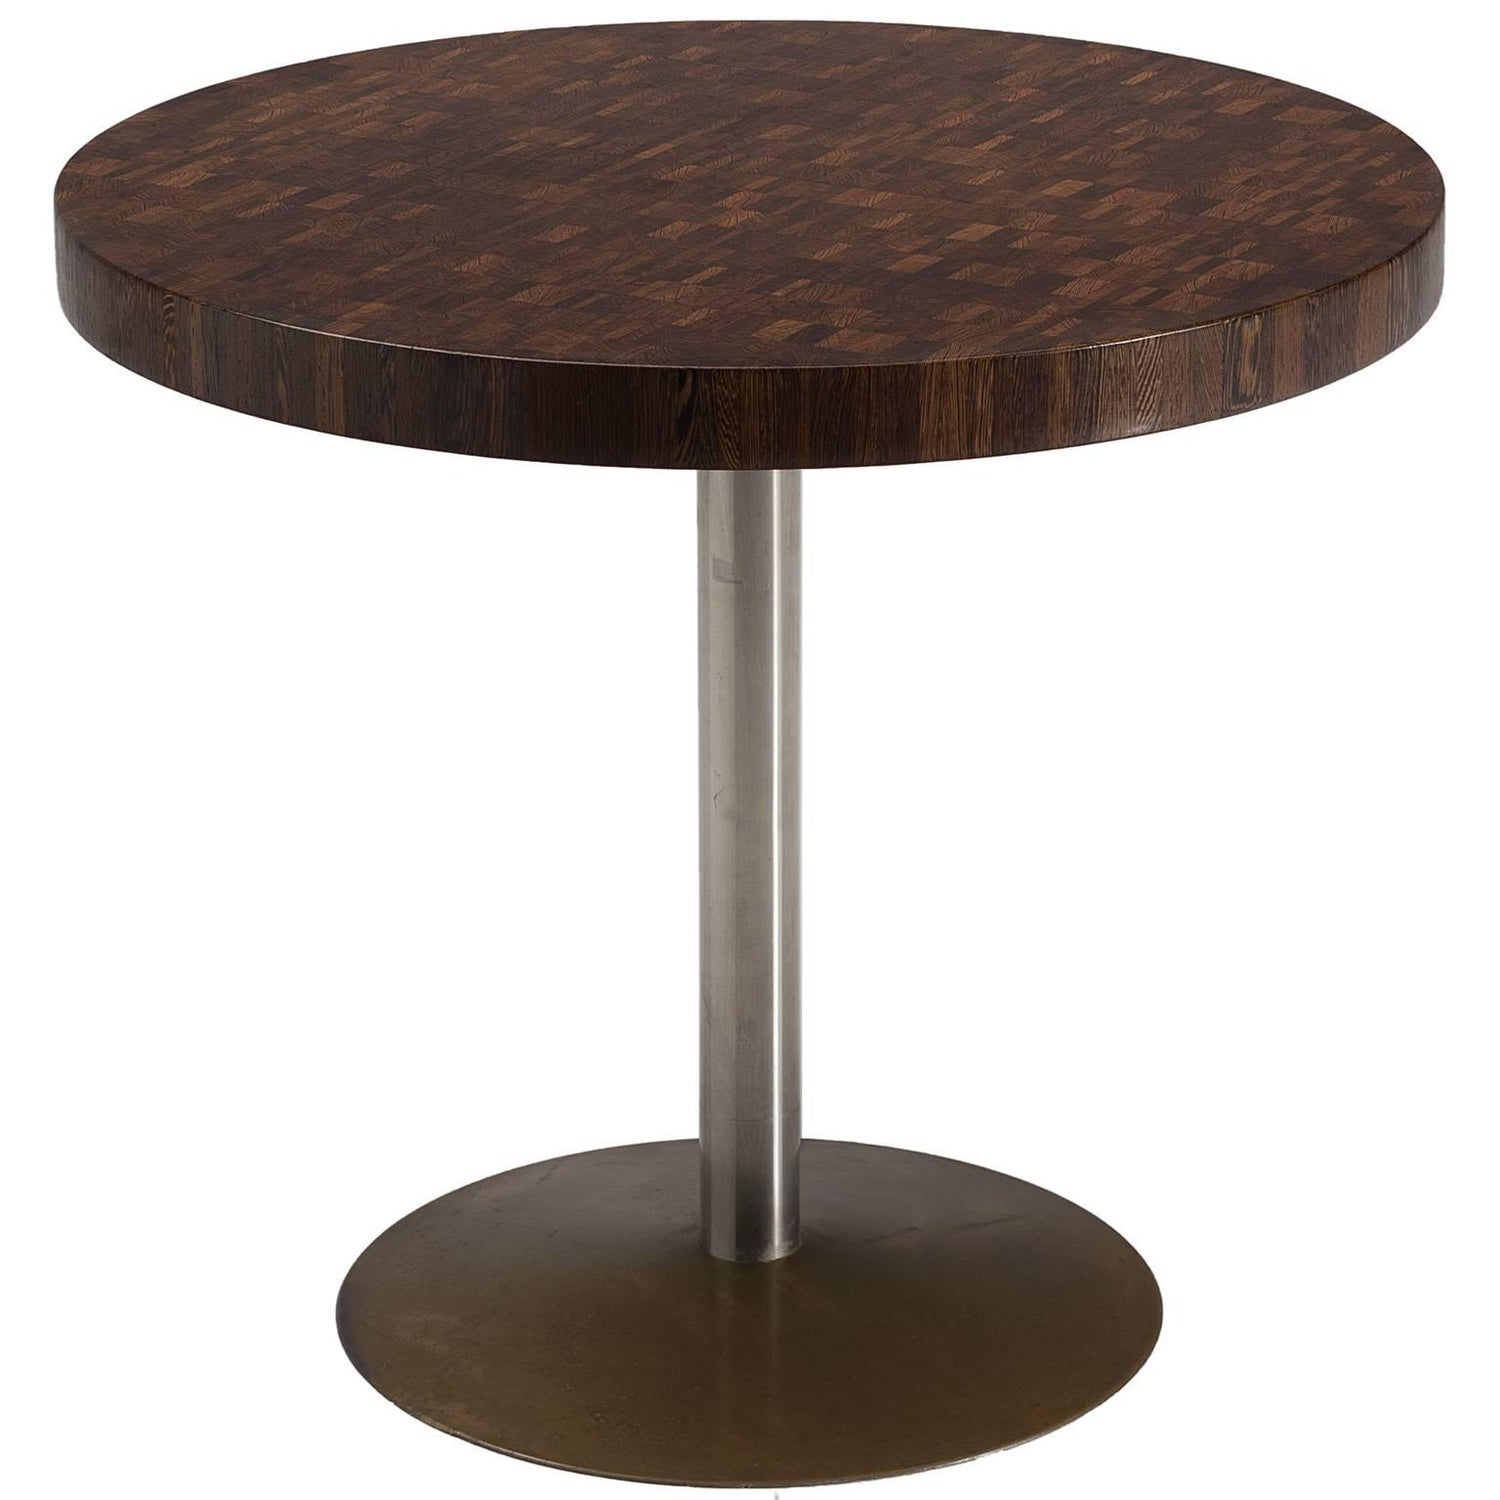 Jules Wabbes Exclusive Small Round Table in Wenge For Sale at 1stdibs